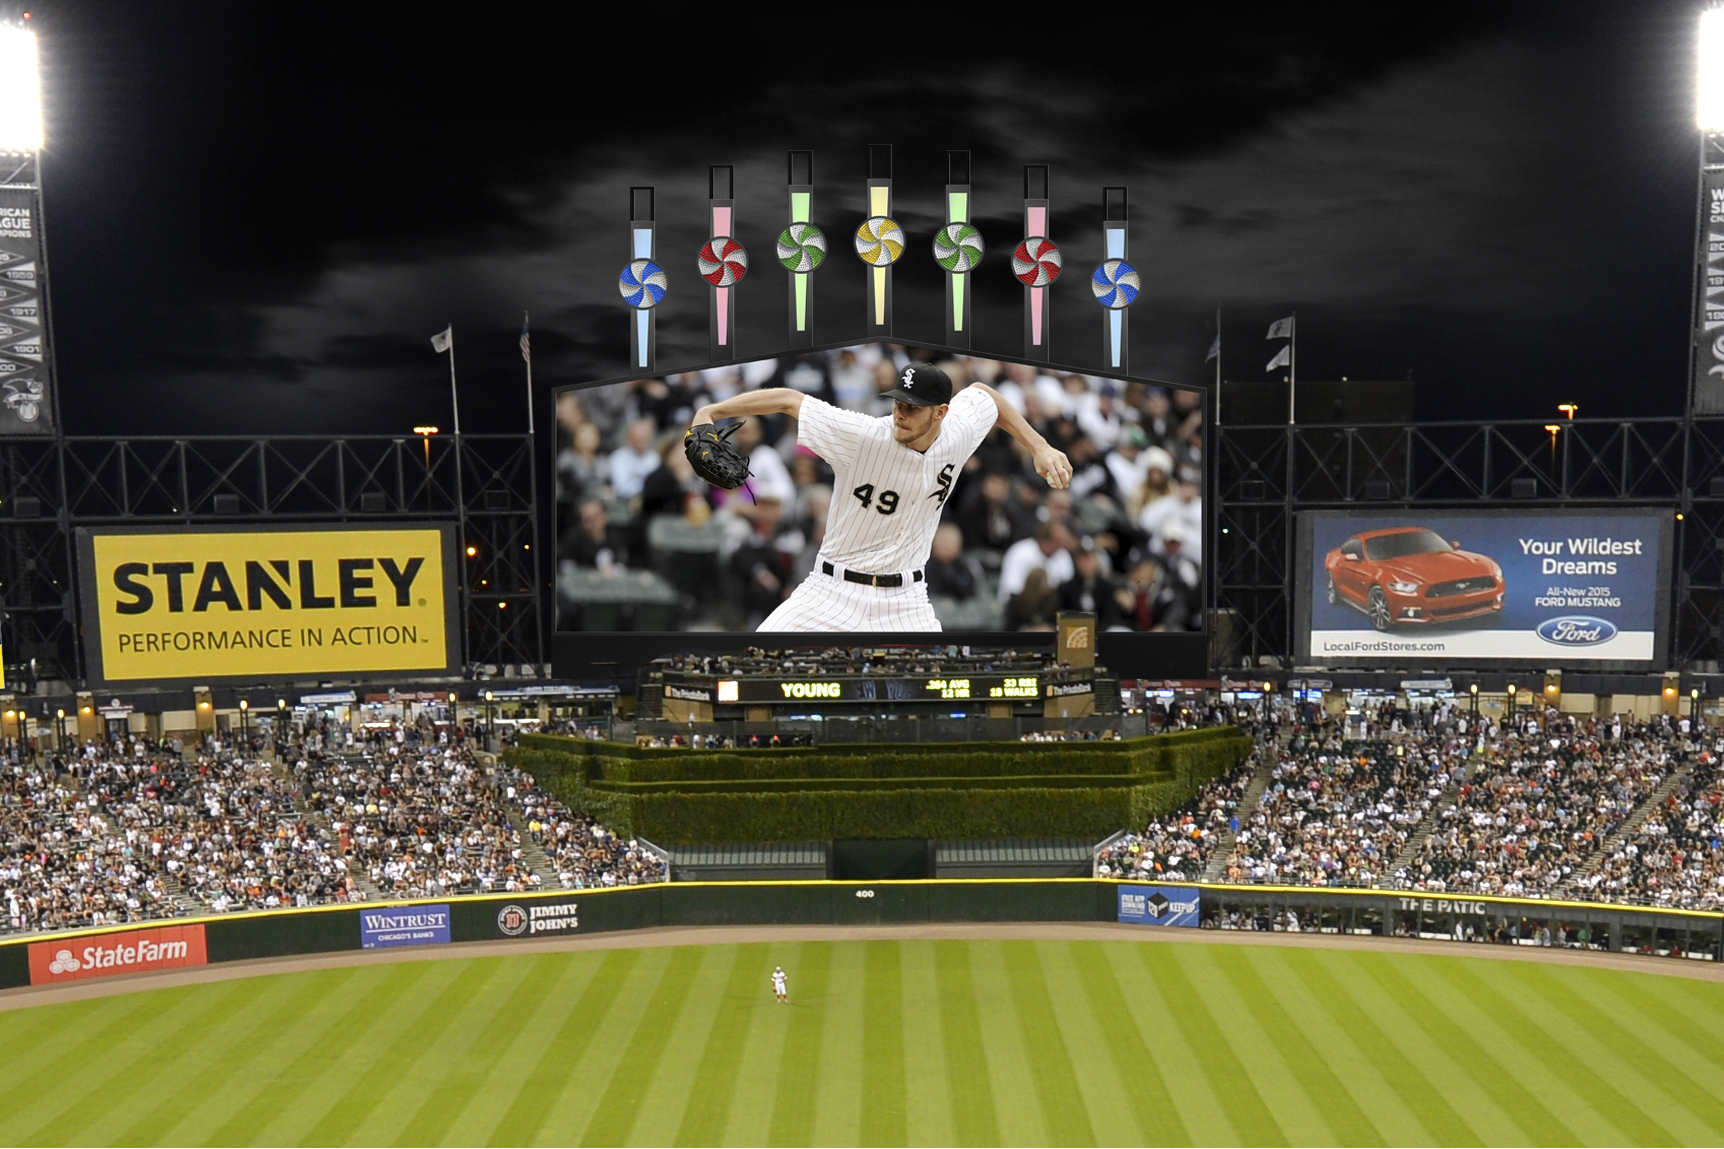 Chris Sale Looks Even BIGGER on Sox Park's New Jumbotron (PHOTO